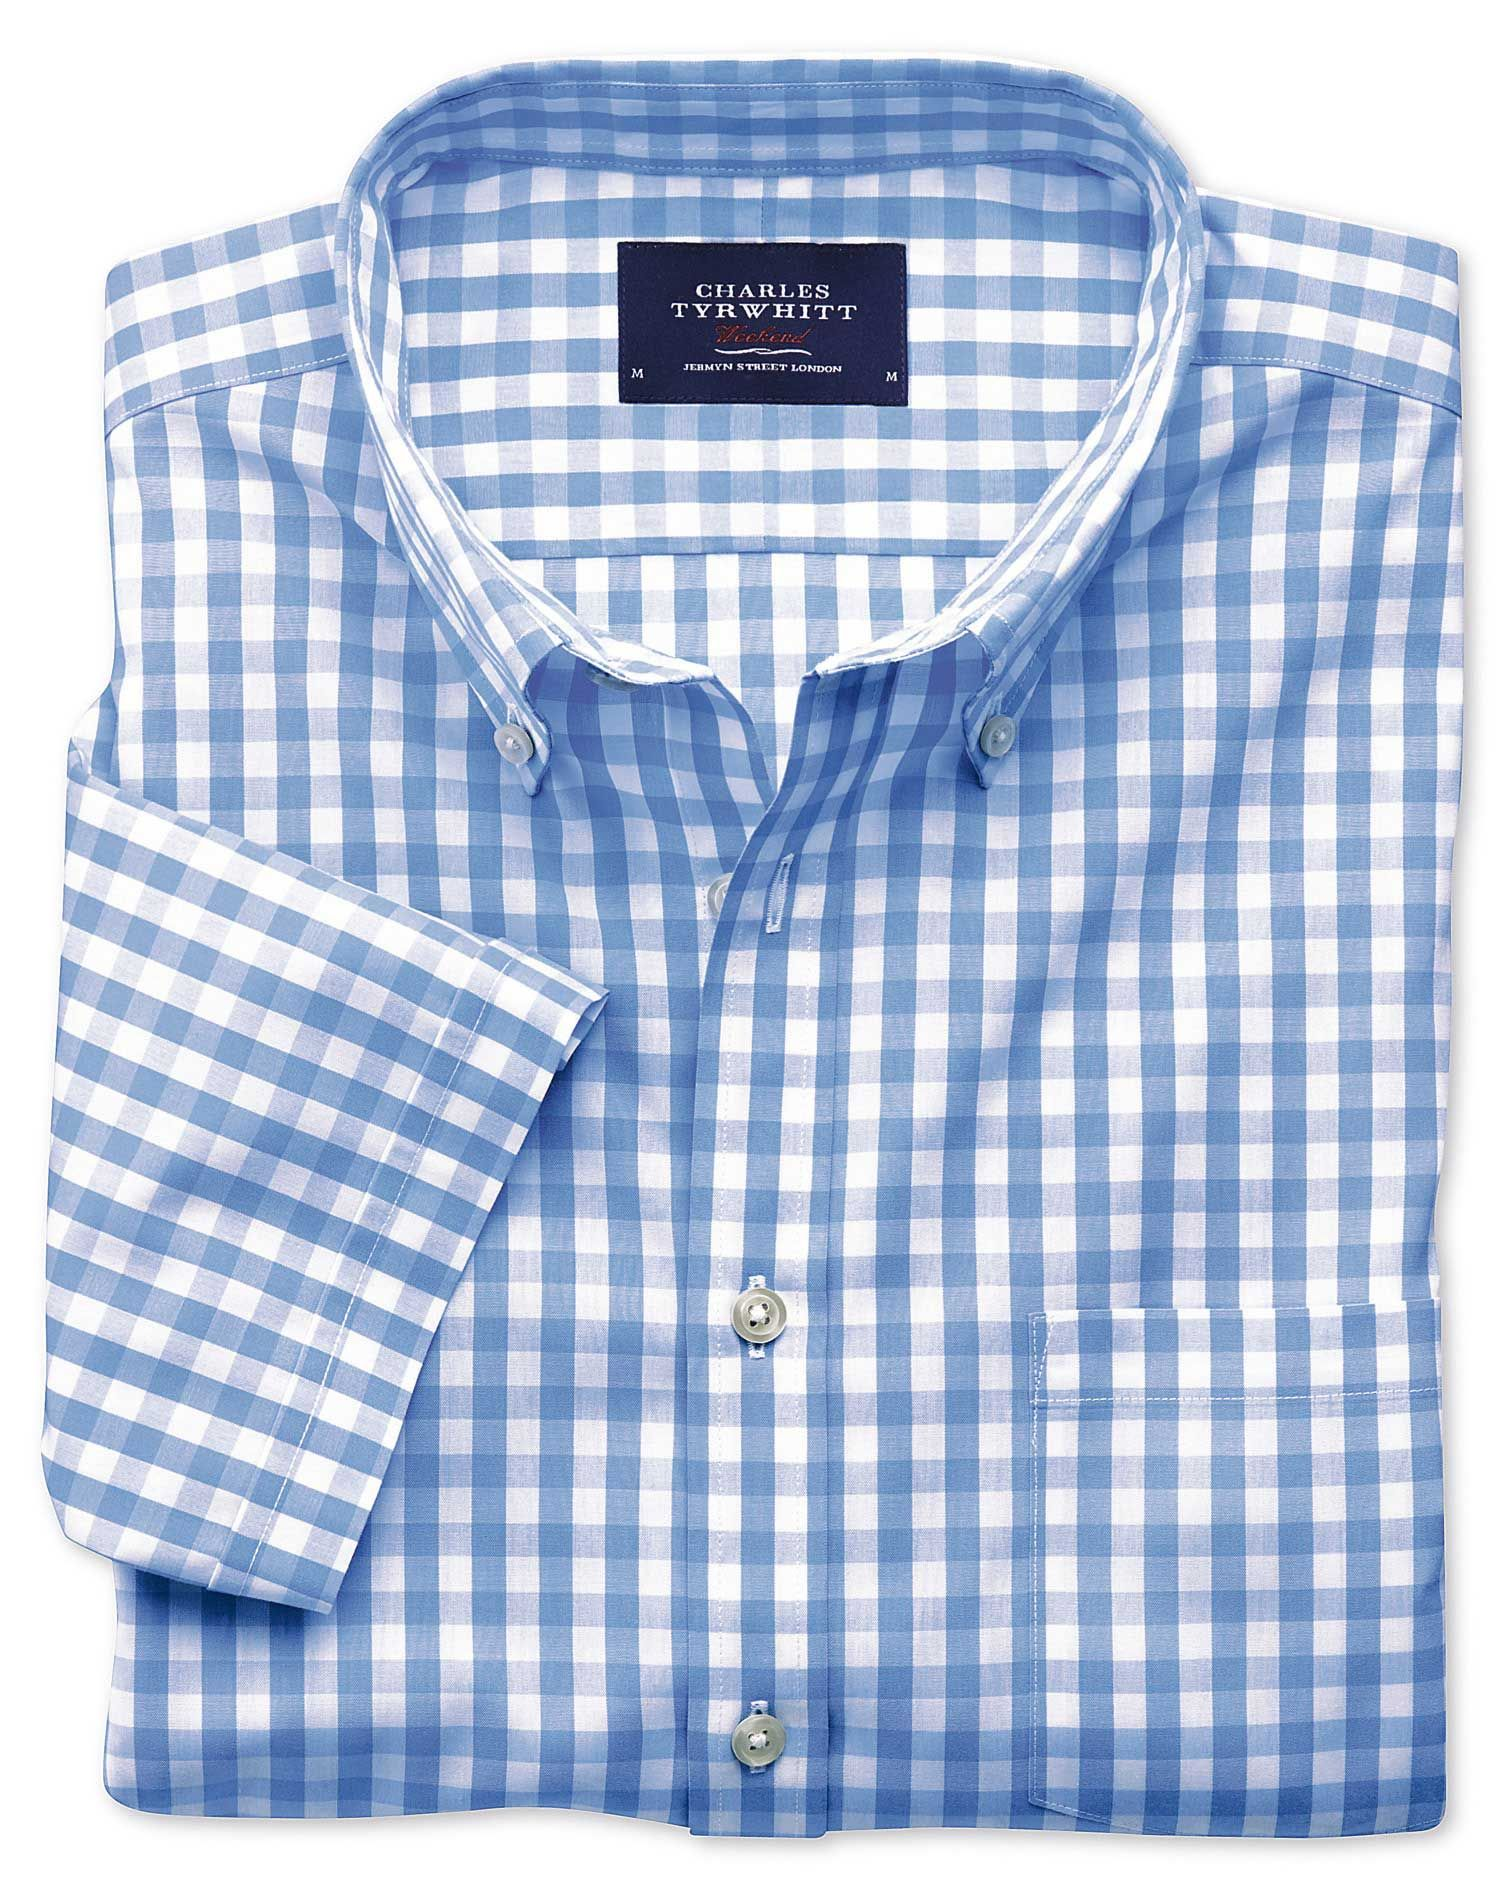 ddb5d9c96 Slim fit button-down non-iron poplin short sleeve sky blue gingham ...